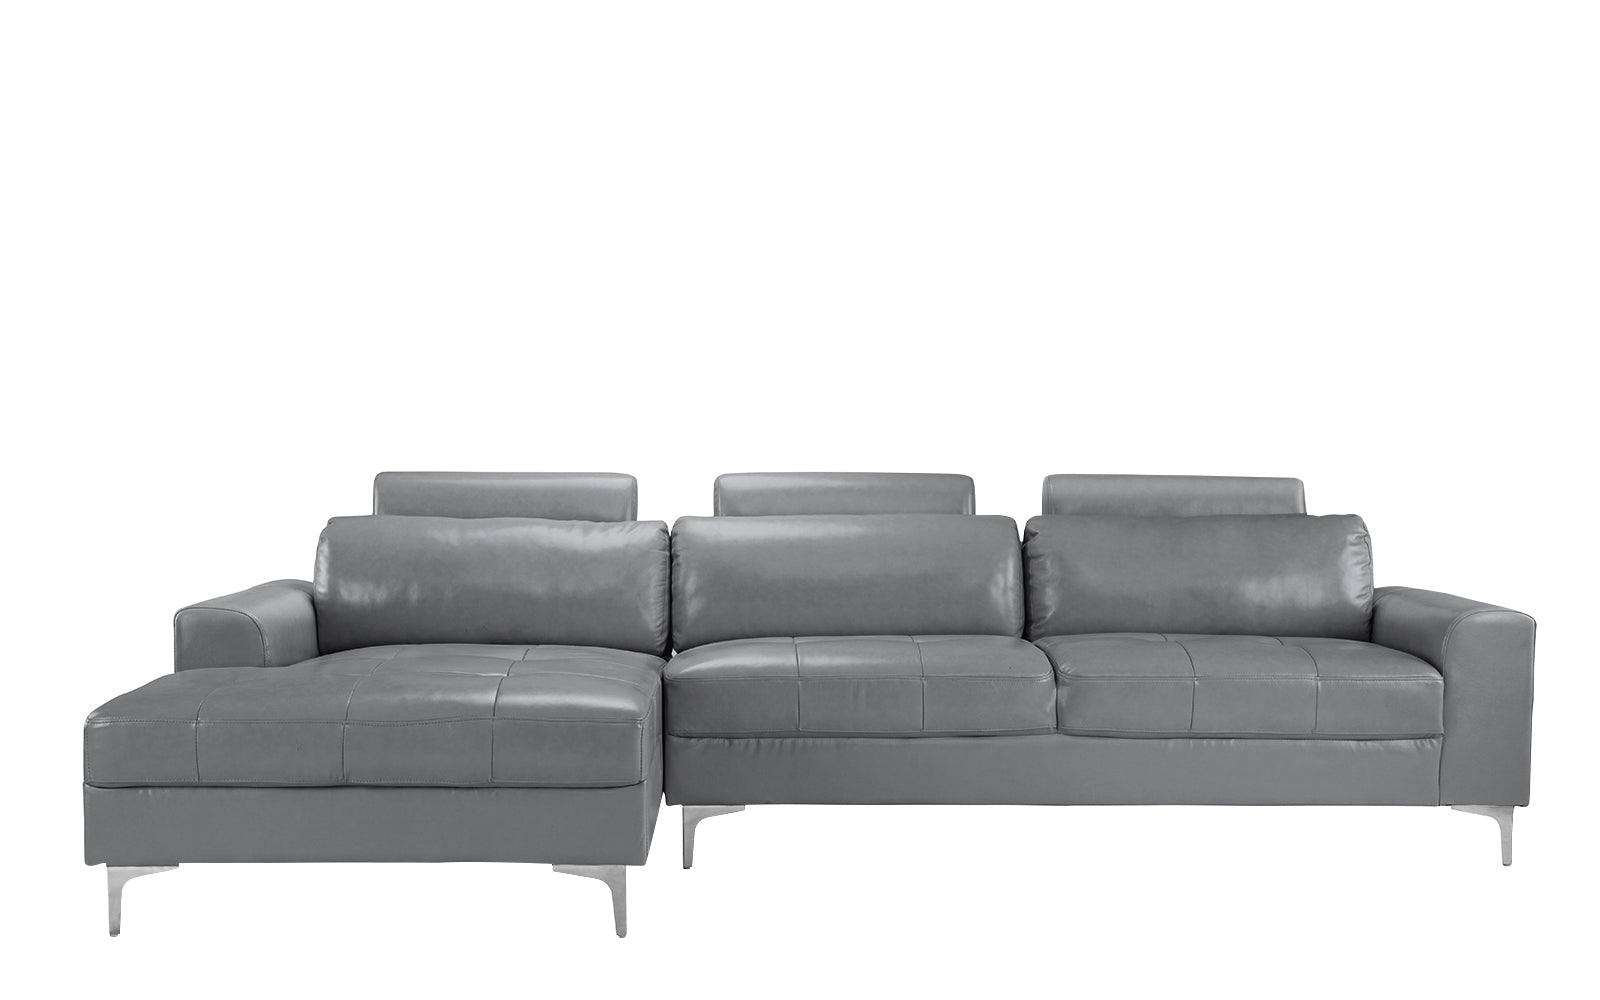 Leather Sectional Sofa Extra Wide Chaise Image